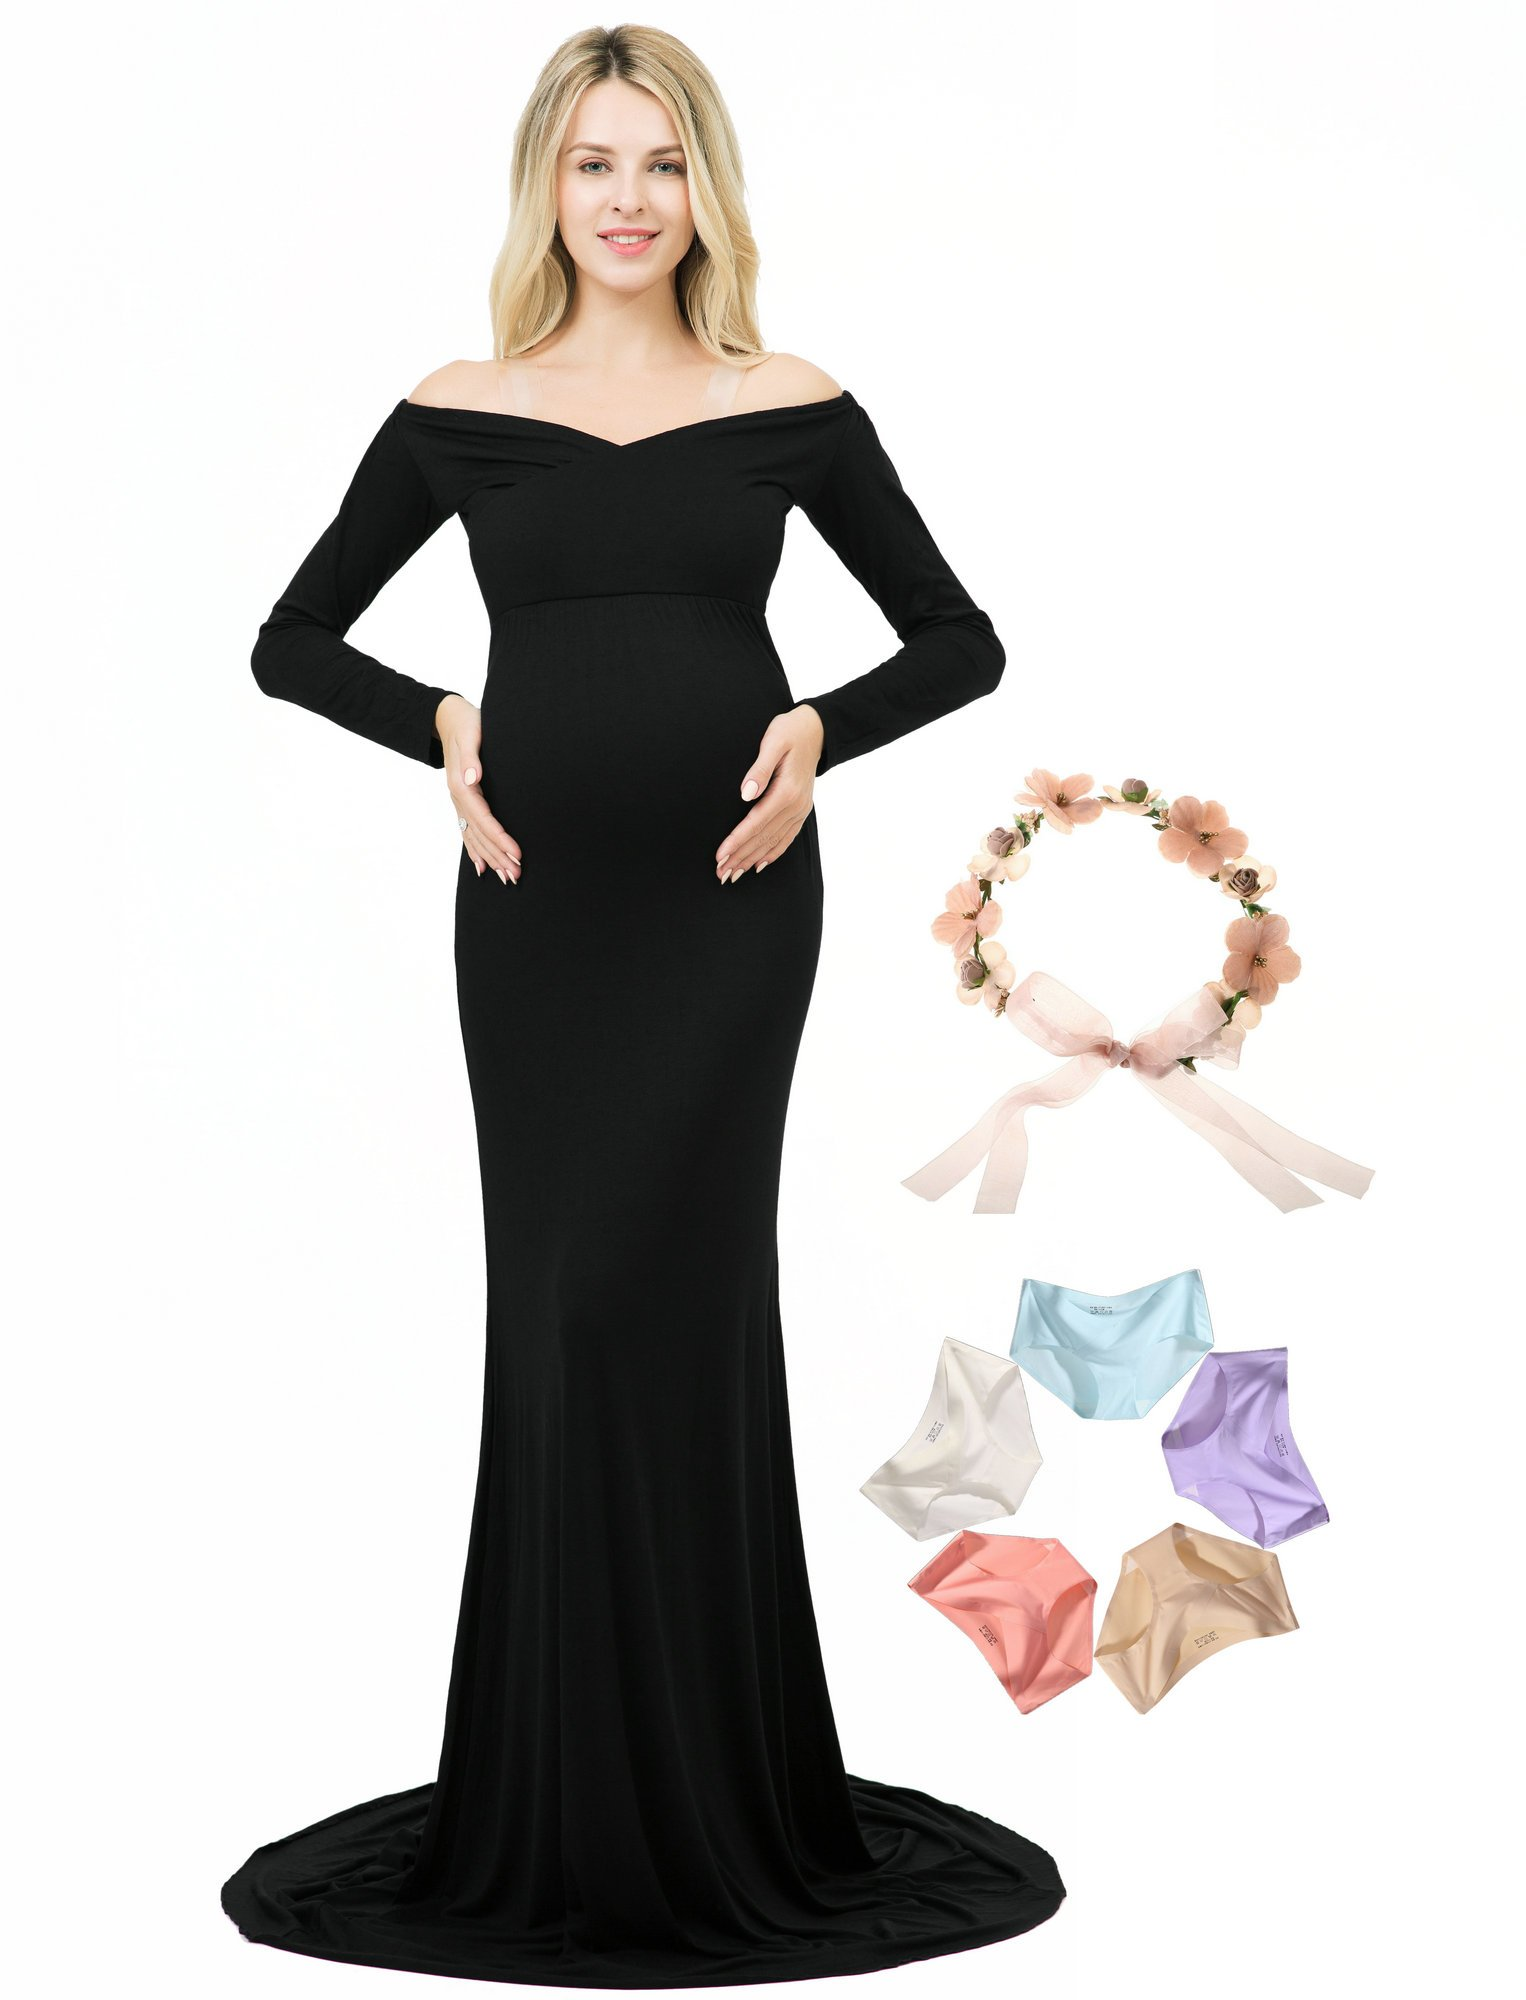 Photoshoot Maternity Dress Long Sleeve Off Shoulder V-Neck Photography Gown (Black, M)